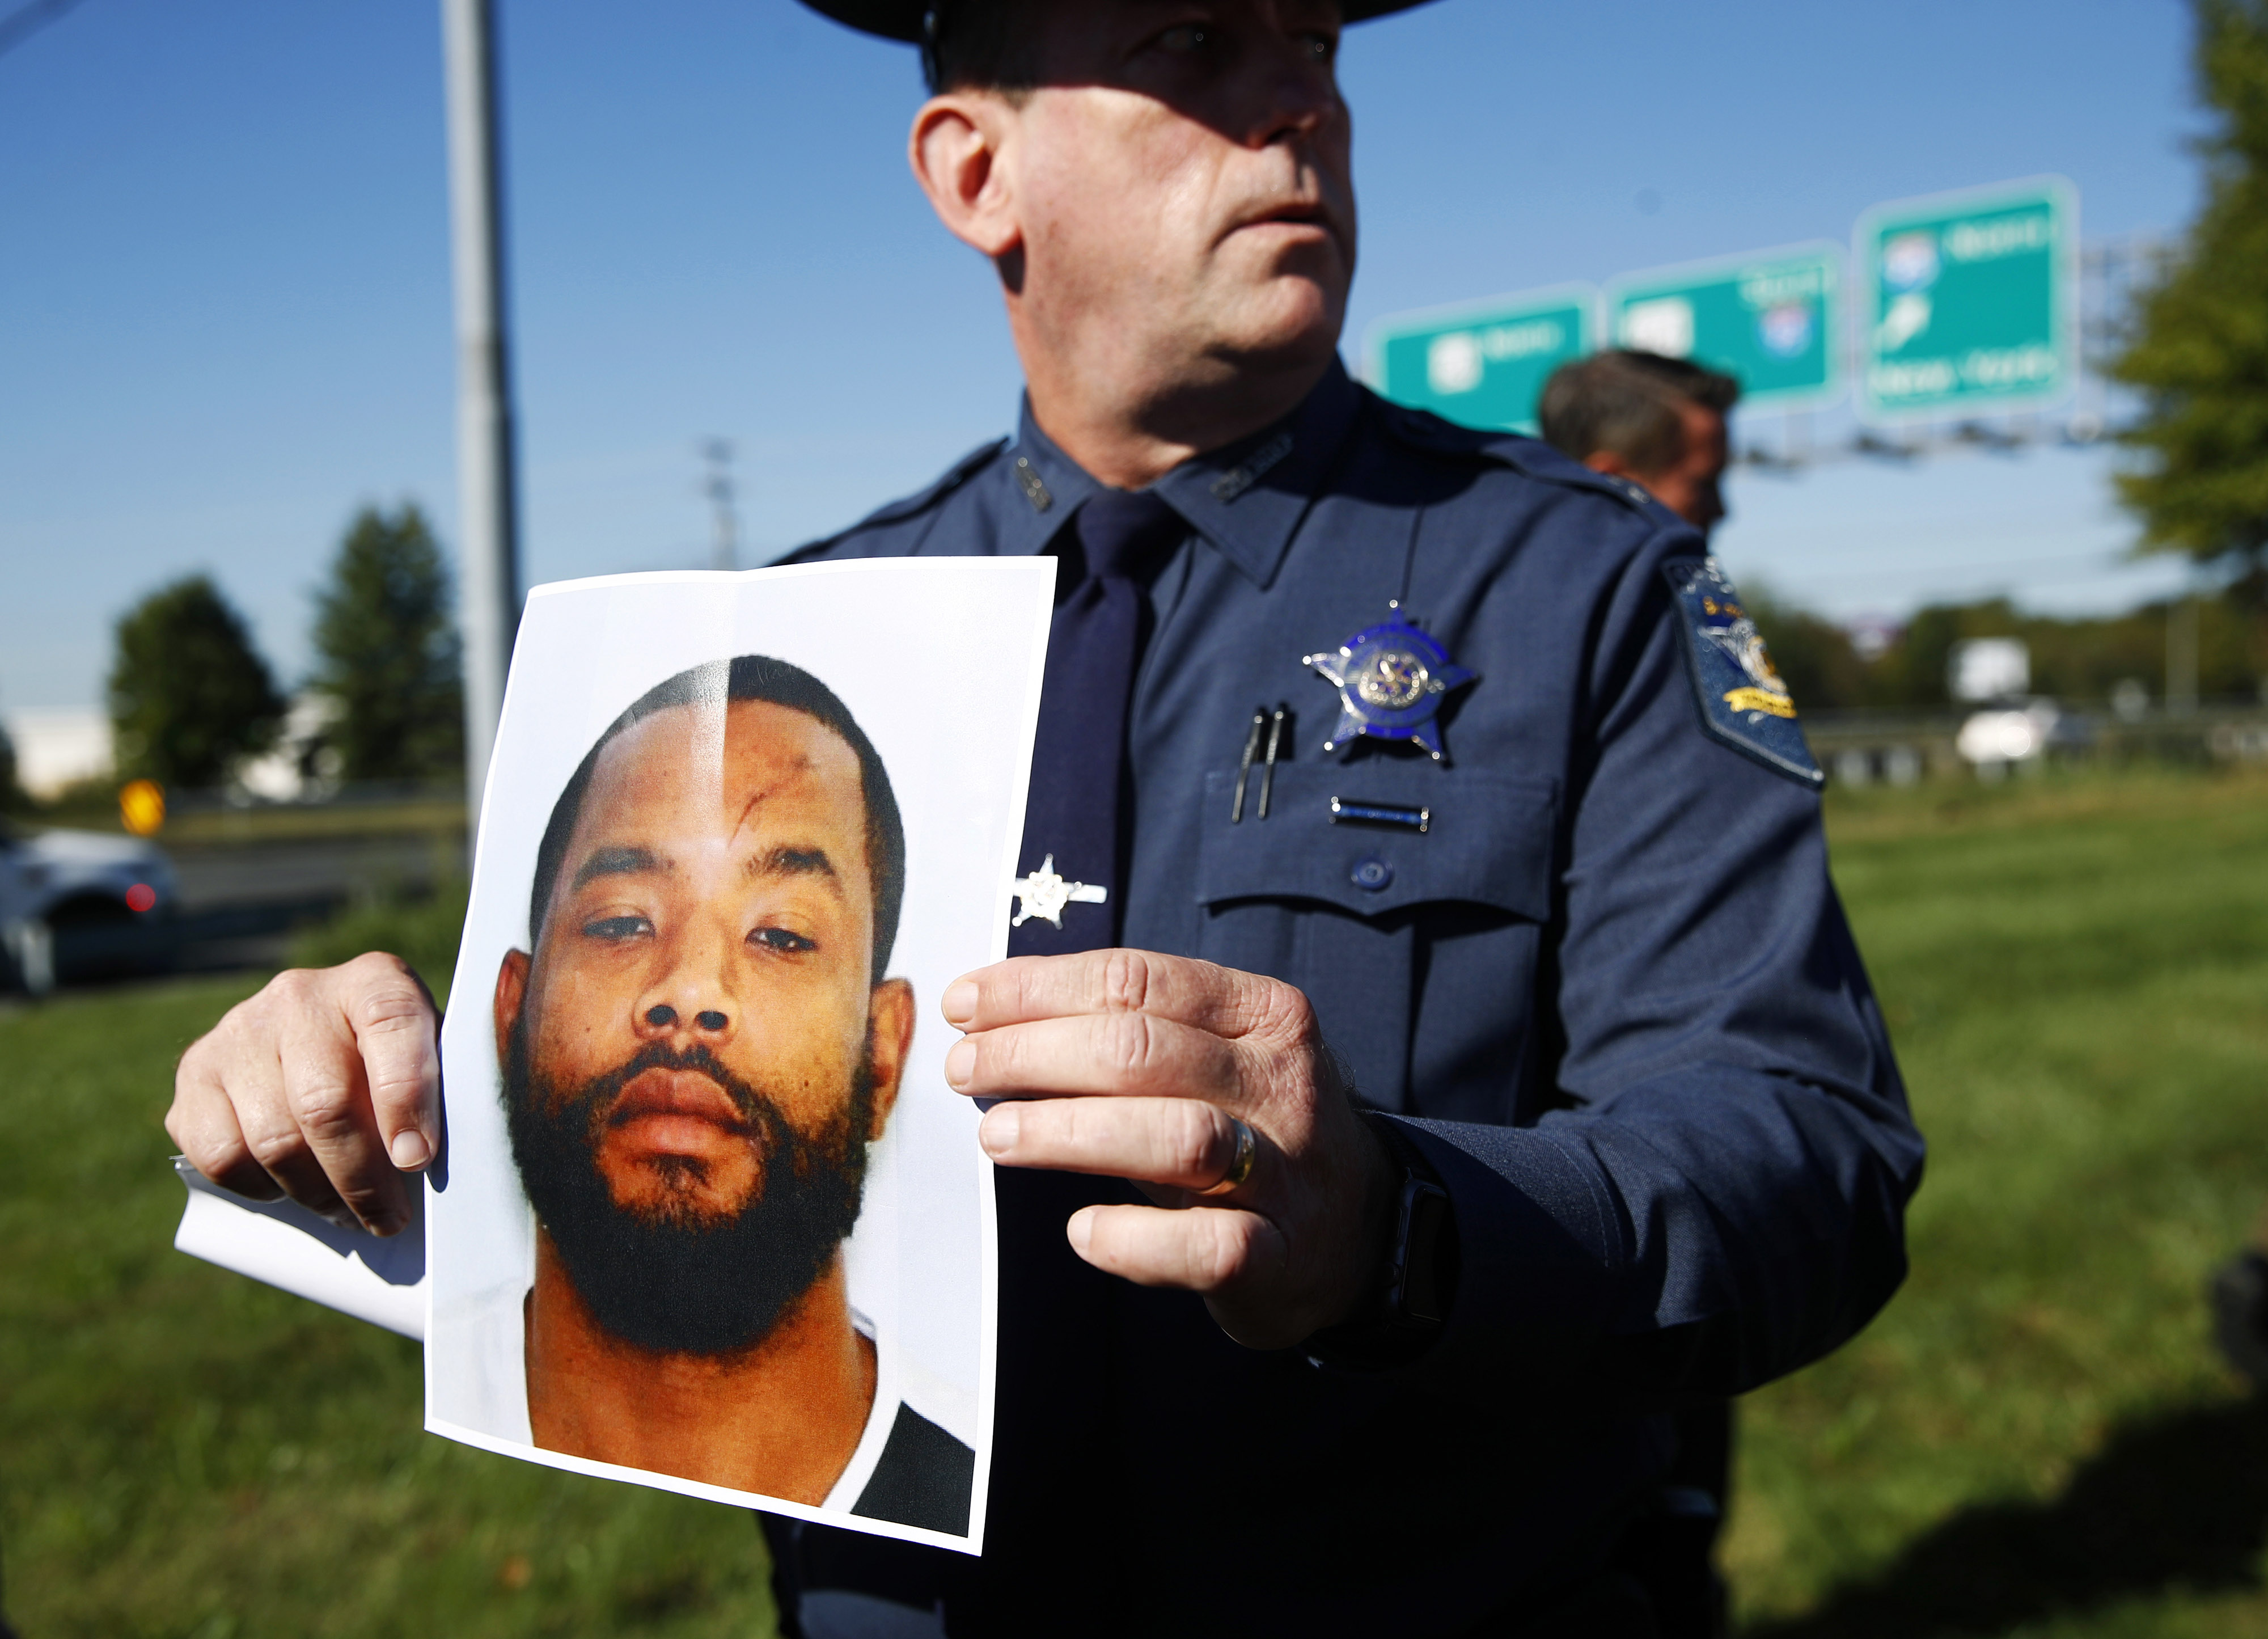 Man suspected of fatally shooting 3 in Maryland is apprehended